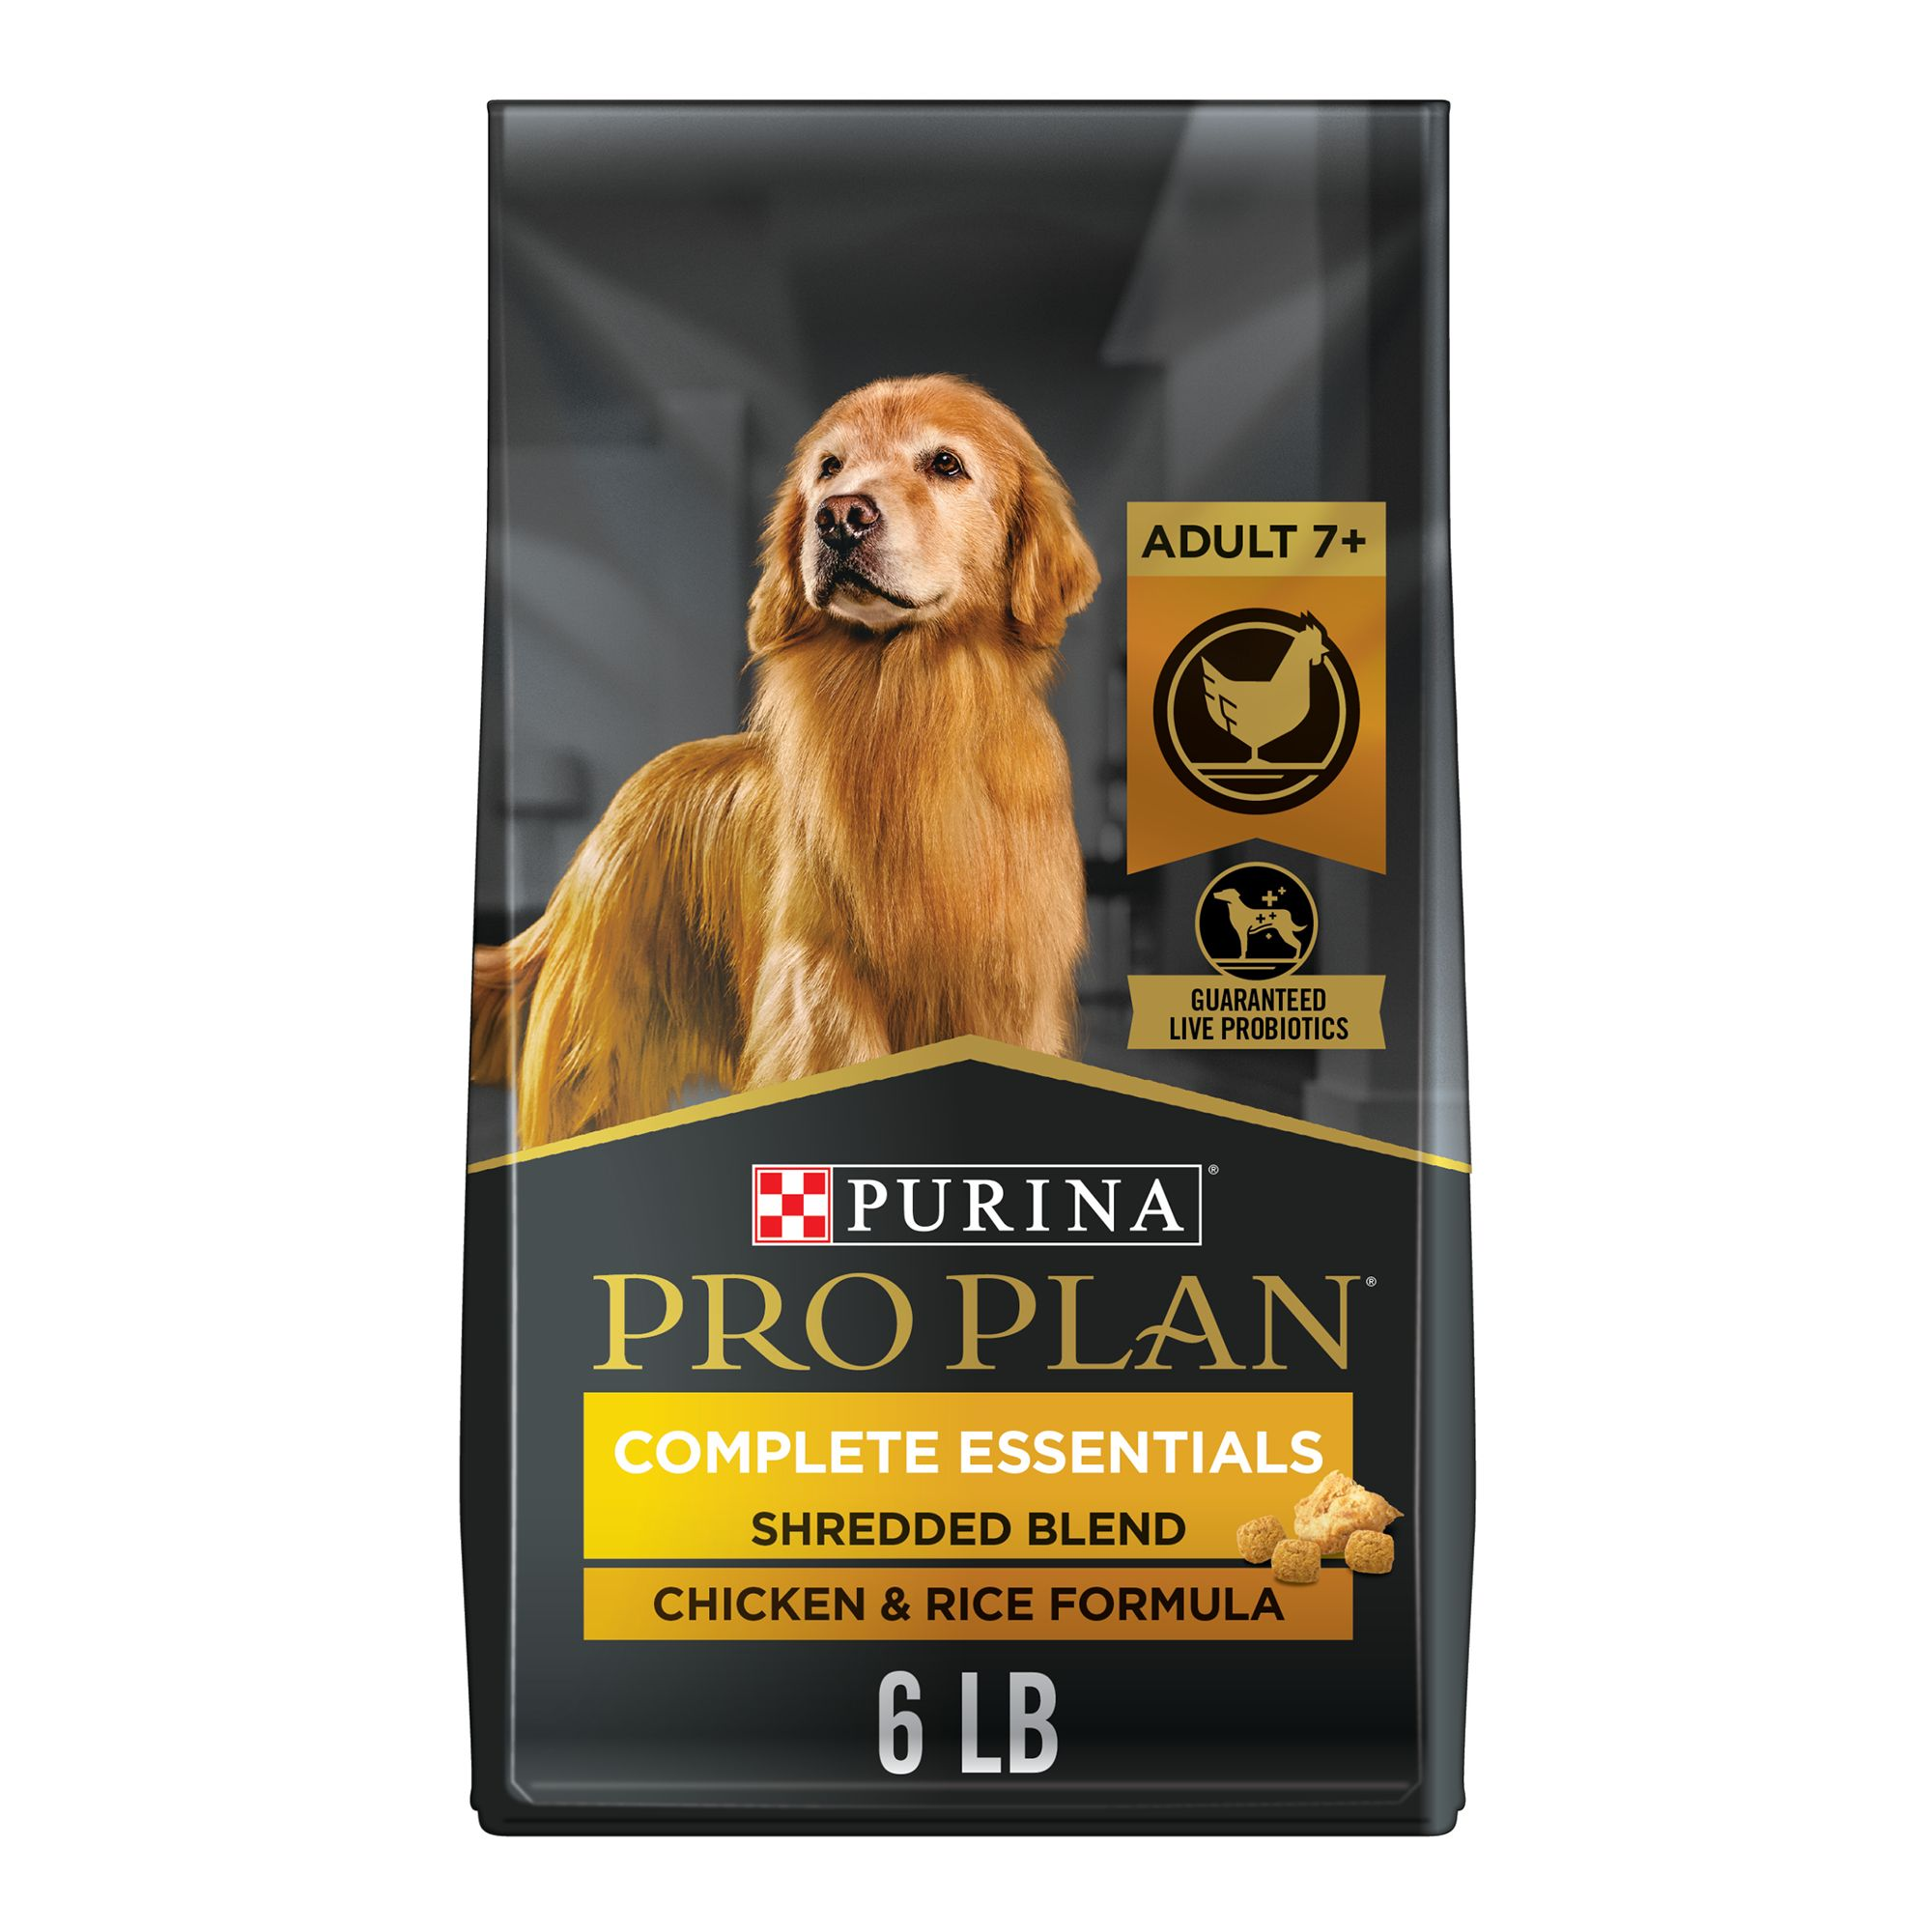 Purina Pro Plan Adult Dog Food Size 6 Lb Chicken And Rice Kibble 7 Yrs Chicken Broth